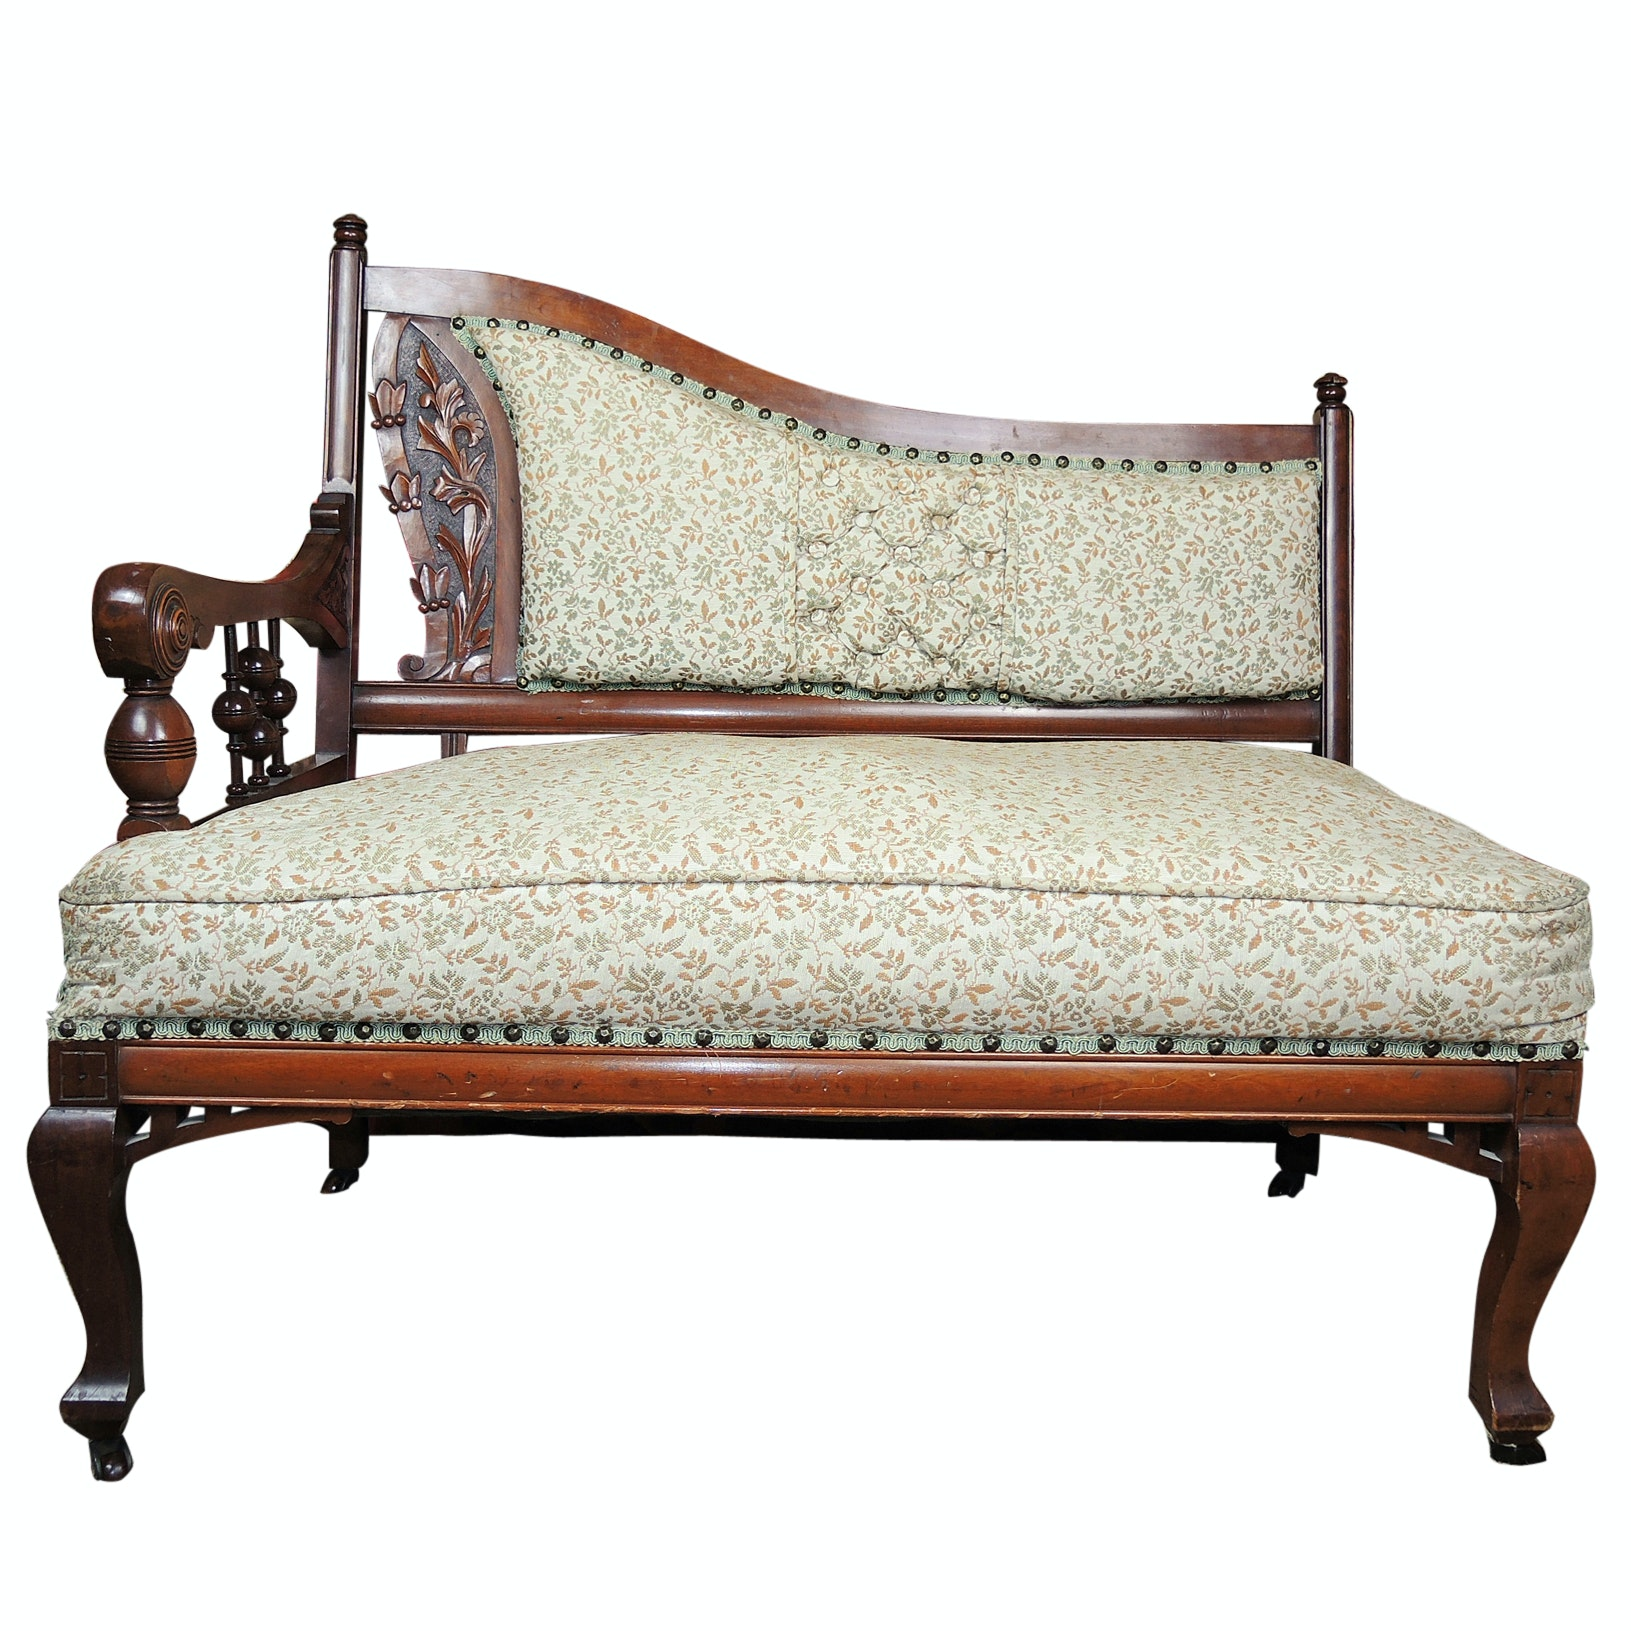 Victorian Settee, Mahogany Art Nouveau Carving, Mid-19th Century